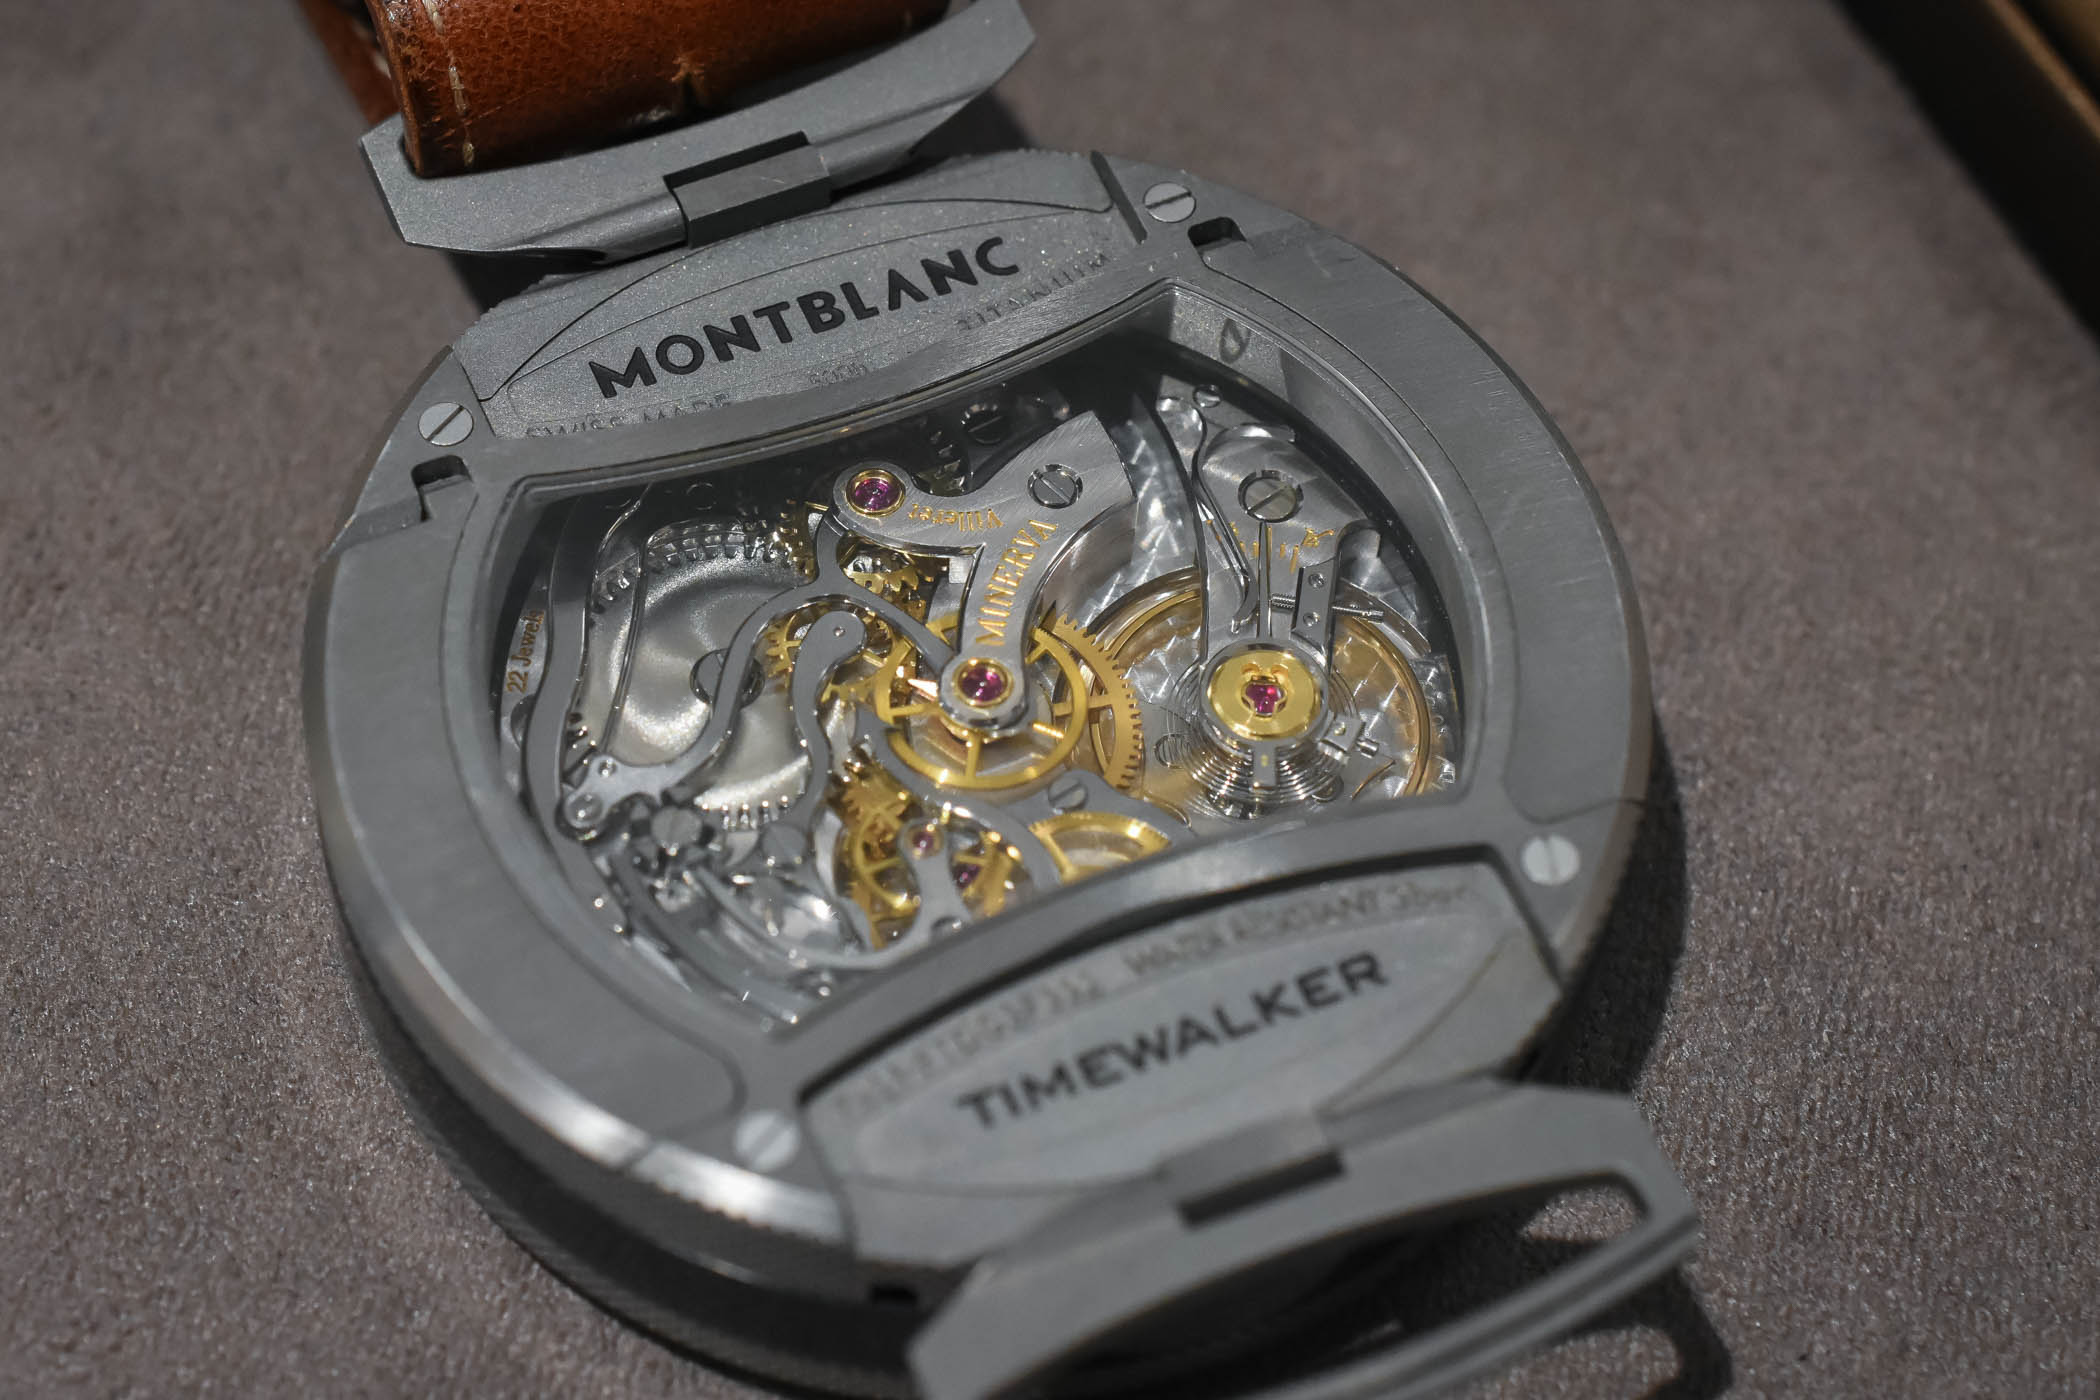 Montblanc TimeWalker Rally Timer Chronograph Reversed Panda SIHH 2018